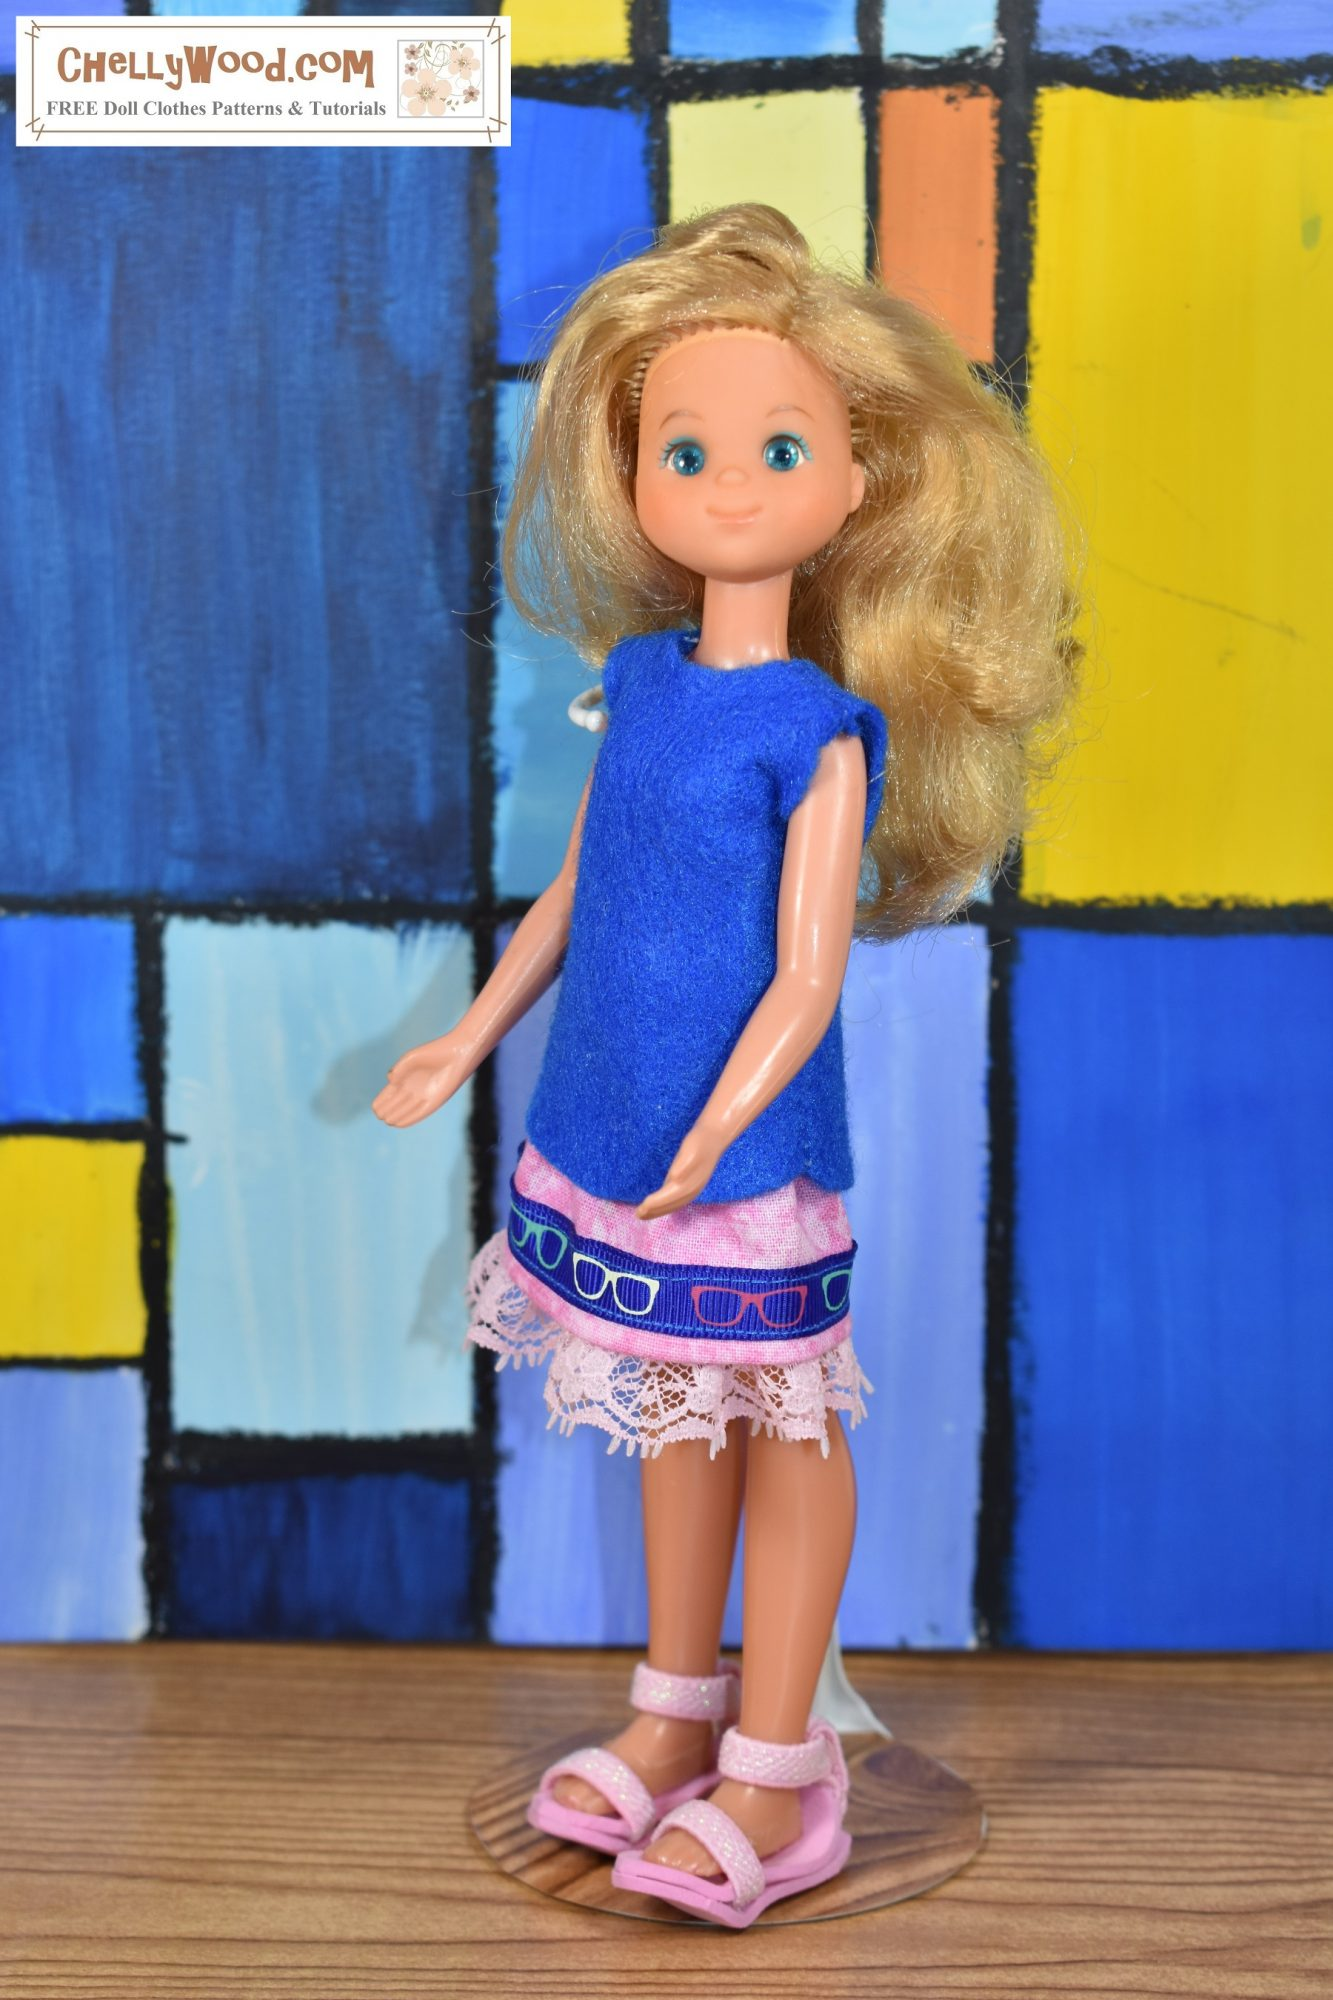 """In this image, a Sunshine Family vintage """"mom"""" doll wears a blue felt handmade shirt and a pink skirt trimmed in ribbon and lace. The doll stands before what appears to be a stained glass style piece of painted artwork. If you'd like to make this outfit for your Sunshine Family doll, please click on the link in the caption that accompanies the image."""